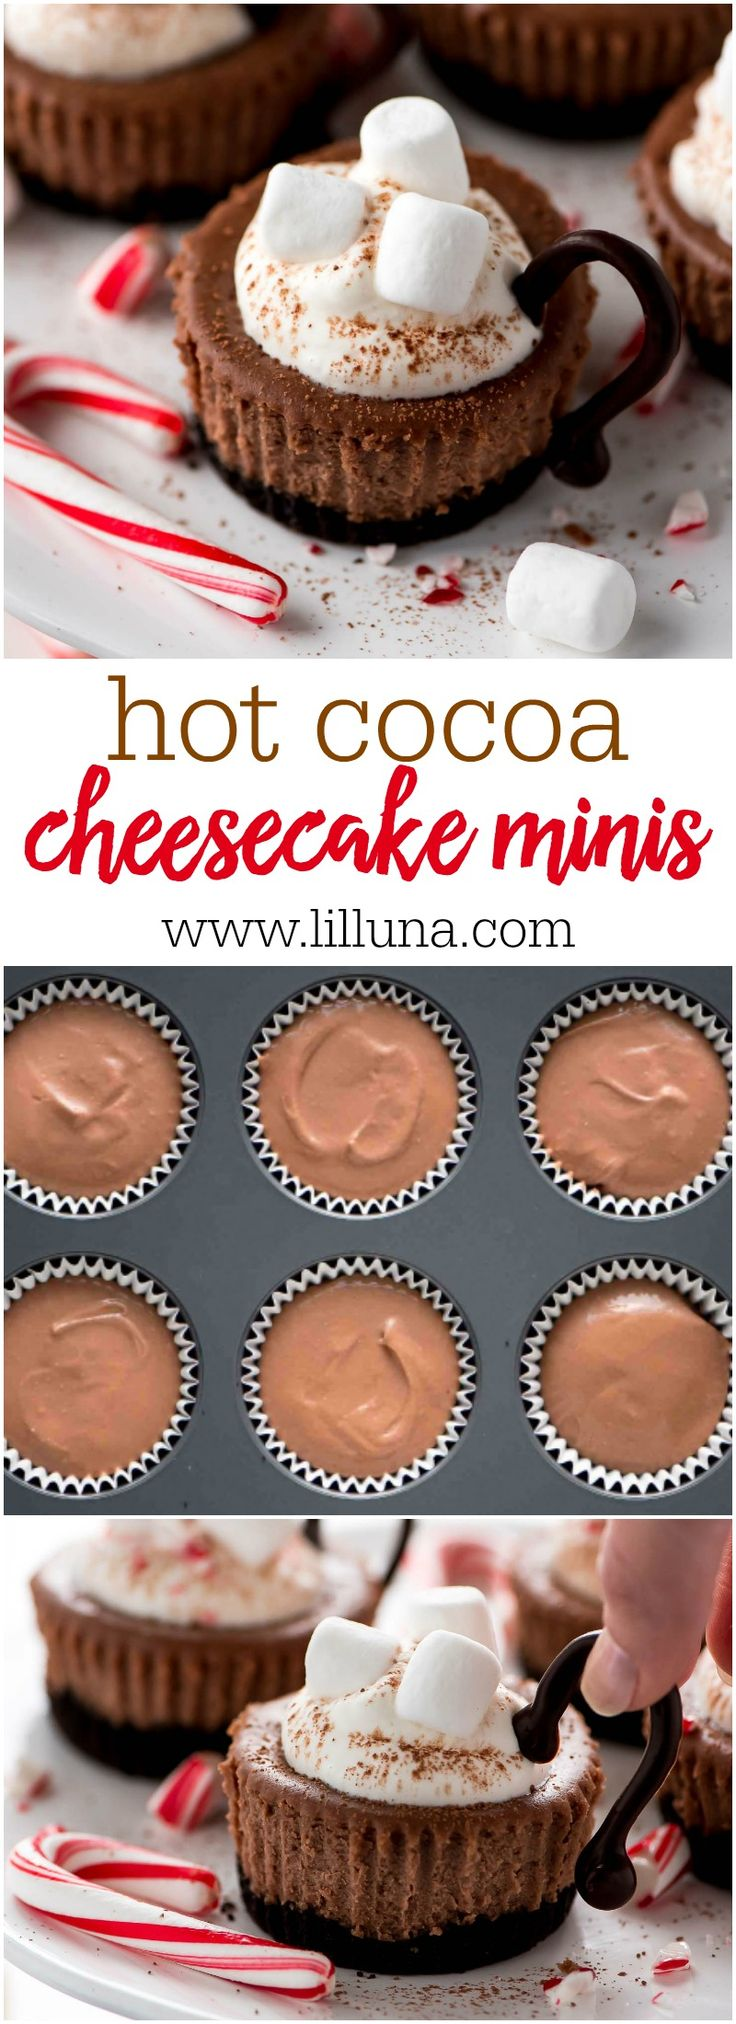 #ad Cute and Delicious Hot Cocoa Cheesecake Minis - this simple and adorable treat has a creamy chocolate cheesecake center and is topped with whipped cream and marshmallows! @spreadphilly #ItMustBeThePhilly